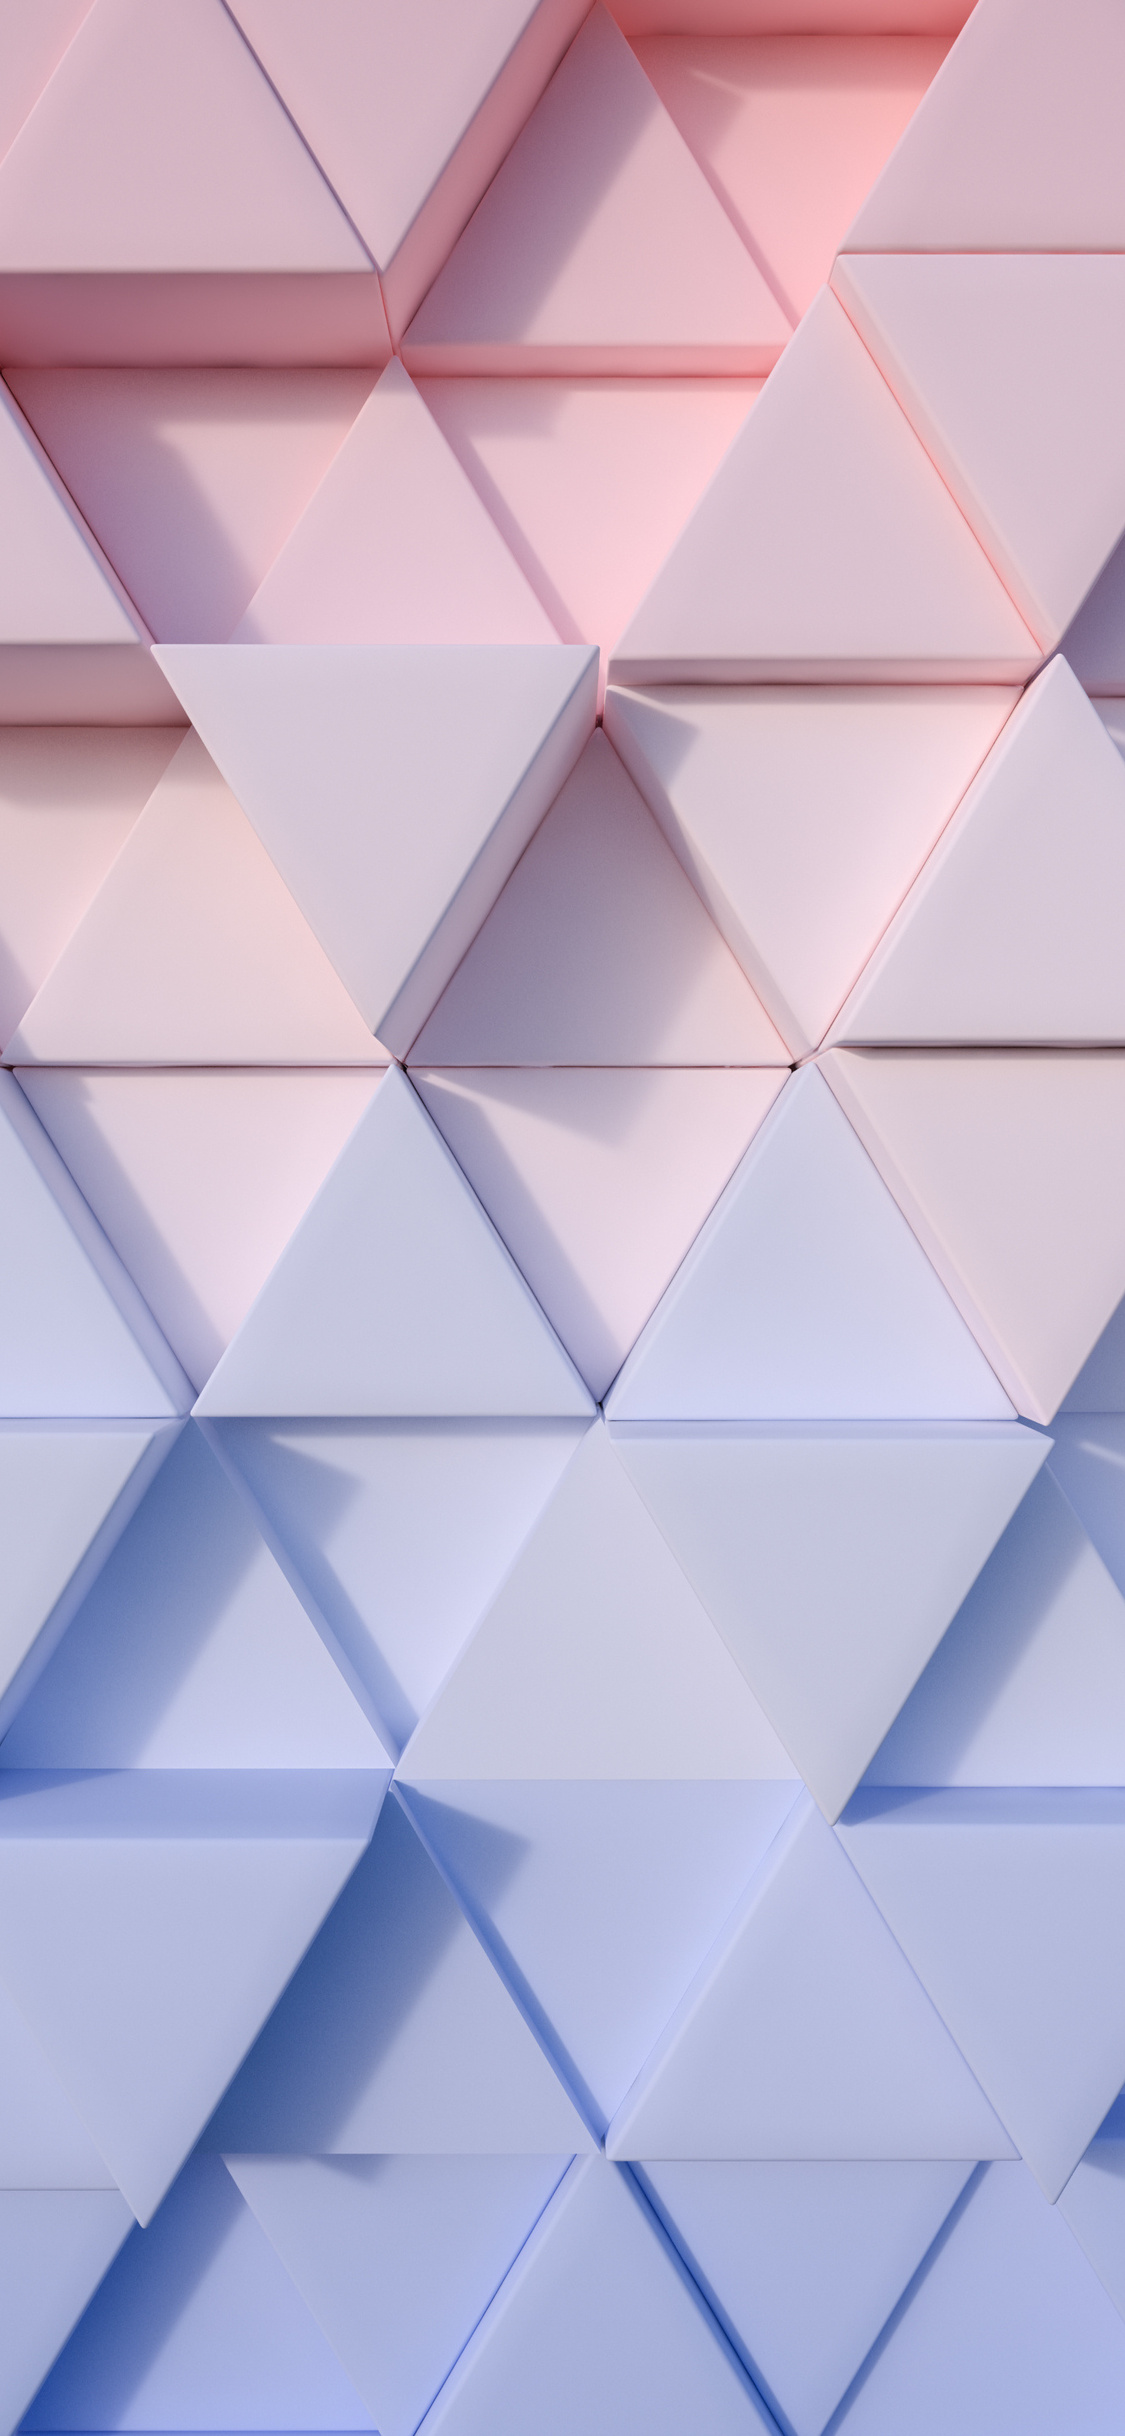 1125x2436 Triangle Pastel 3d 4k Iphone Xs Iphone 10 Iphone X Hd 4k